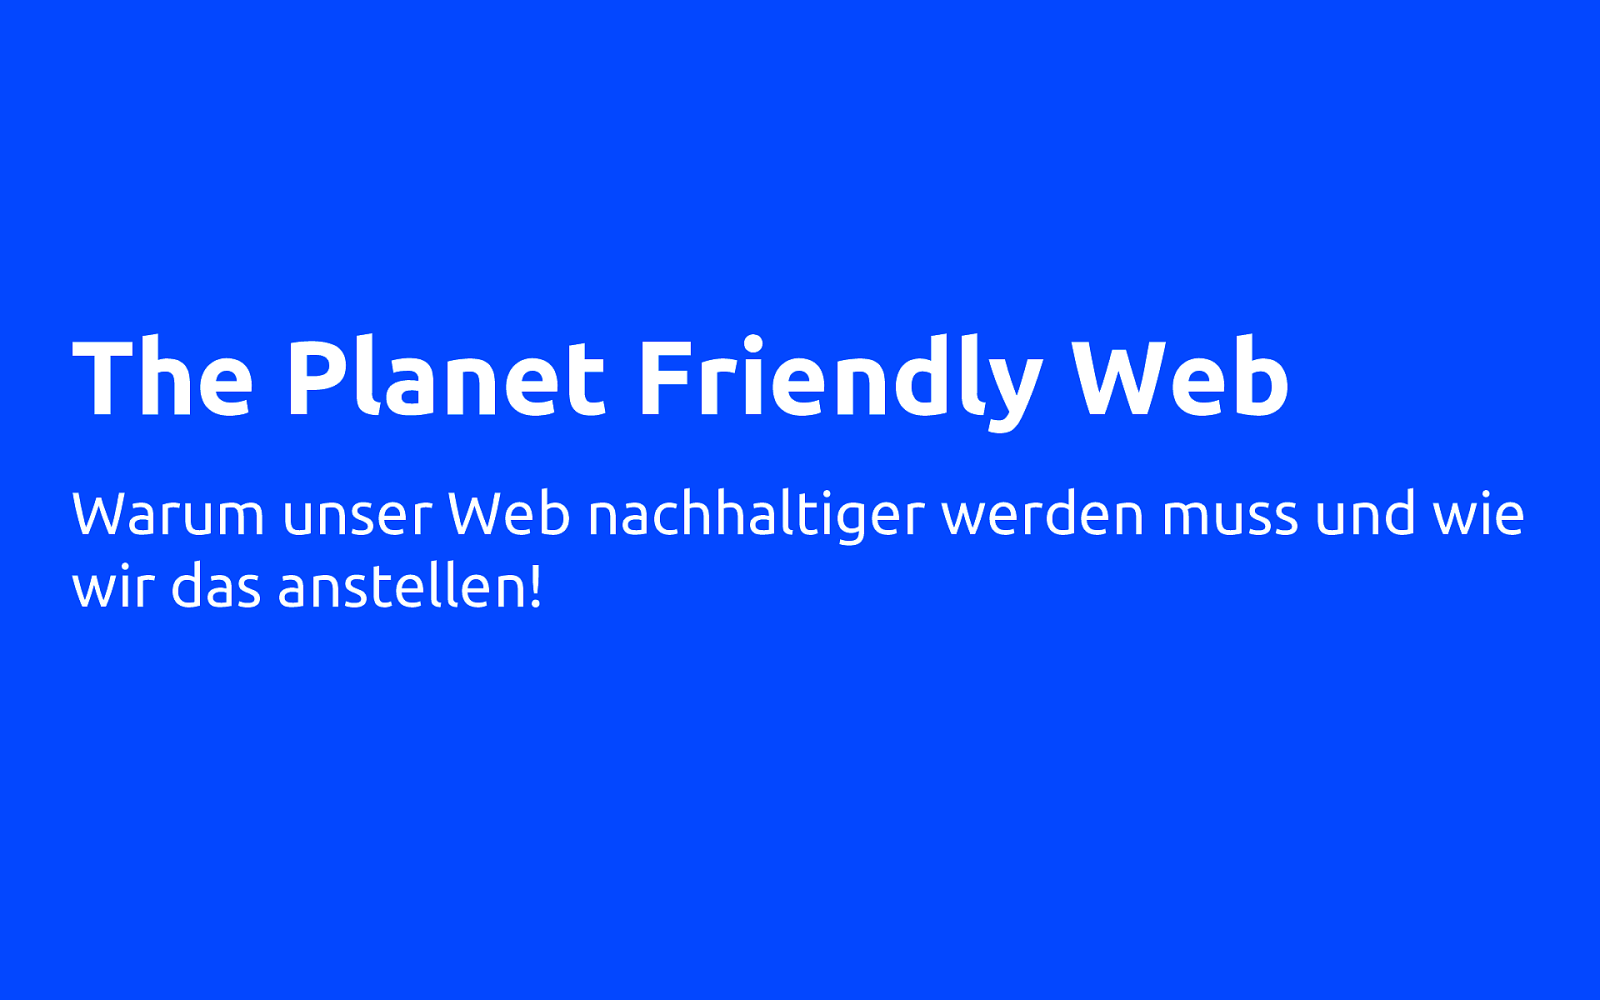 The Planet Friendly Web